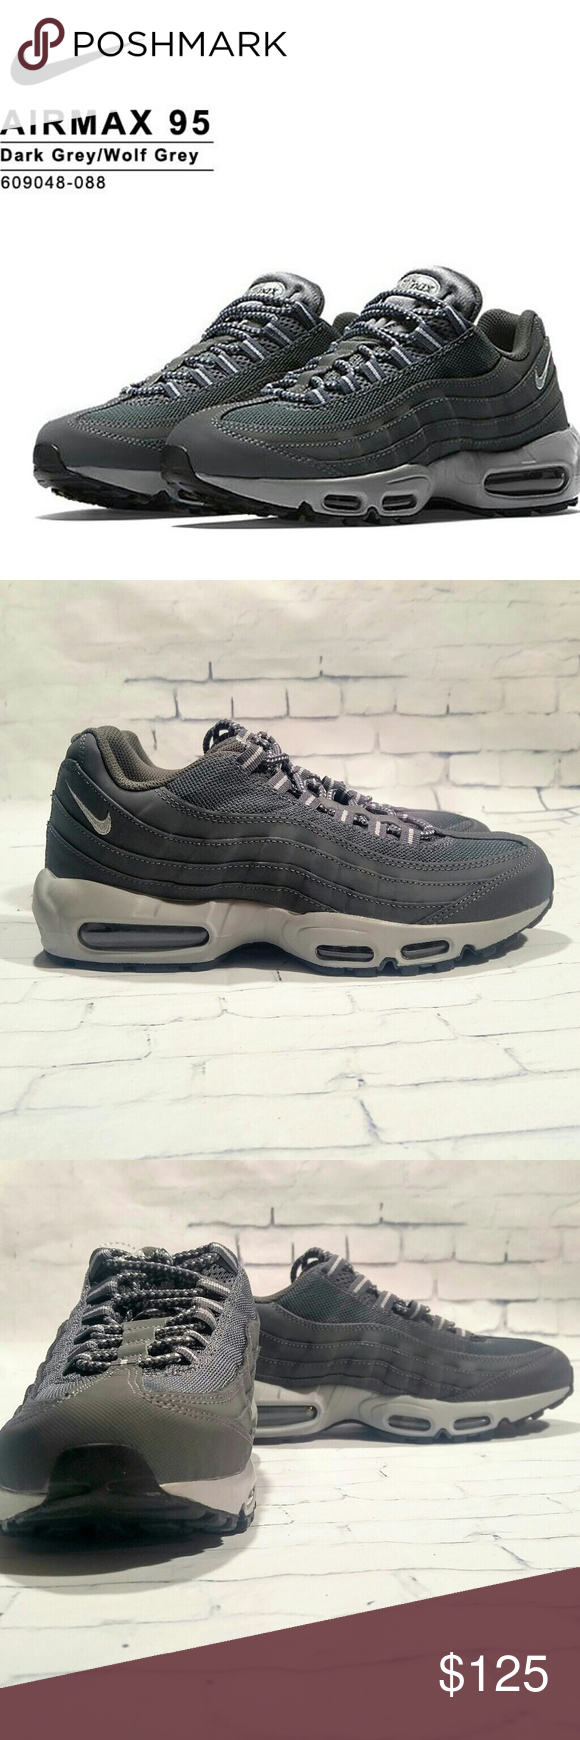 581b40c963b0 New Nike Air Max 95 Grey Wolf 609048-088 Shoes 8.5 You are buying Brand